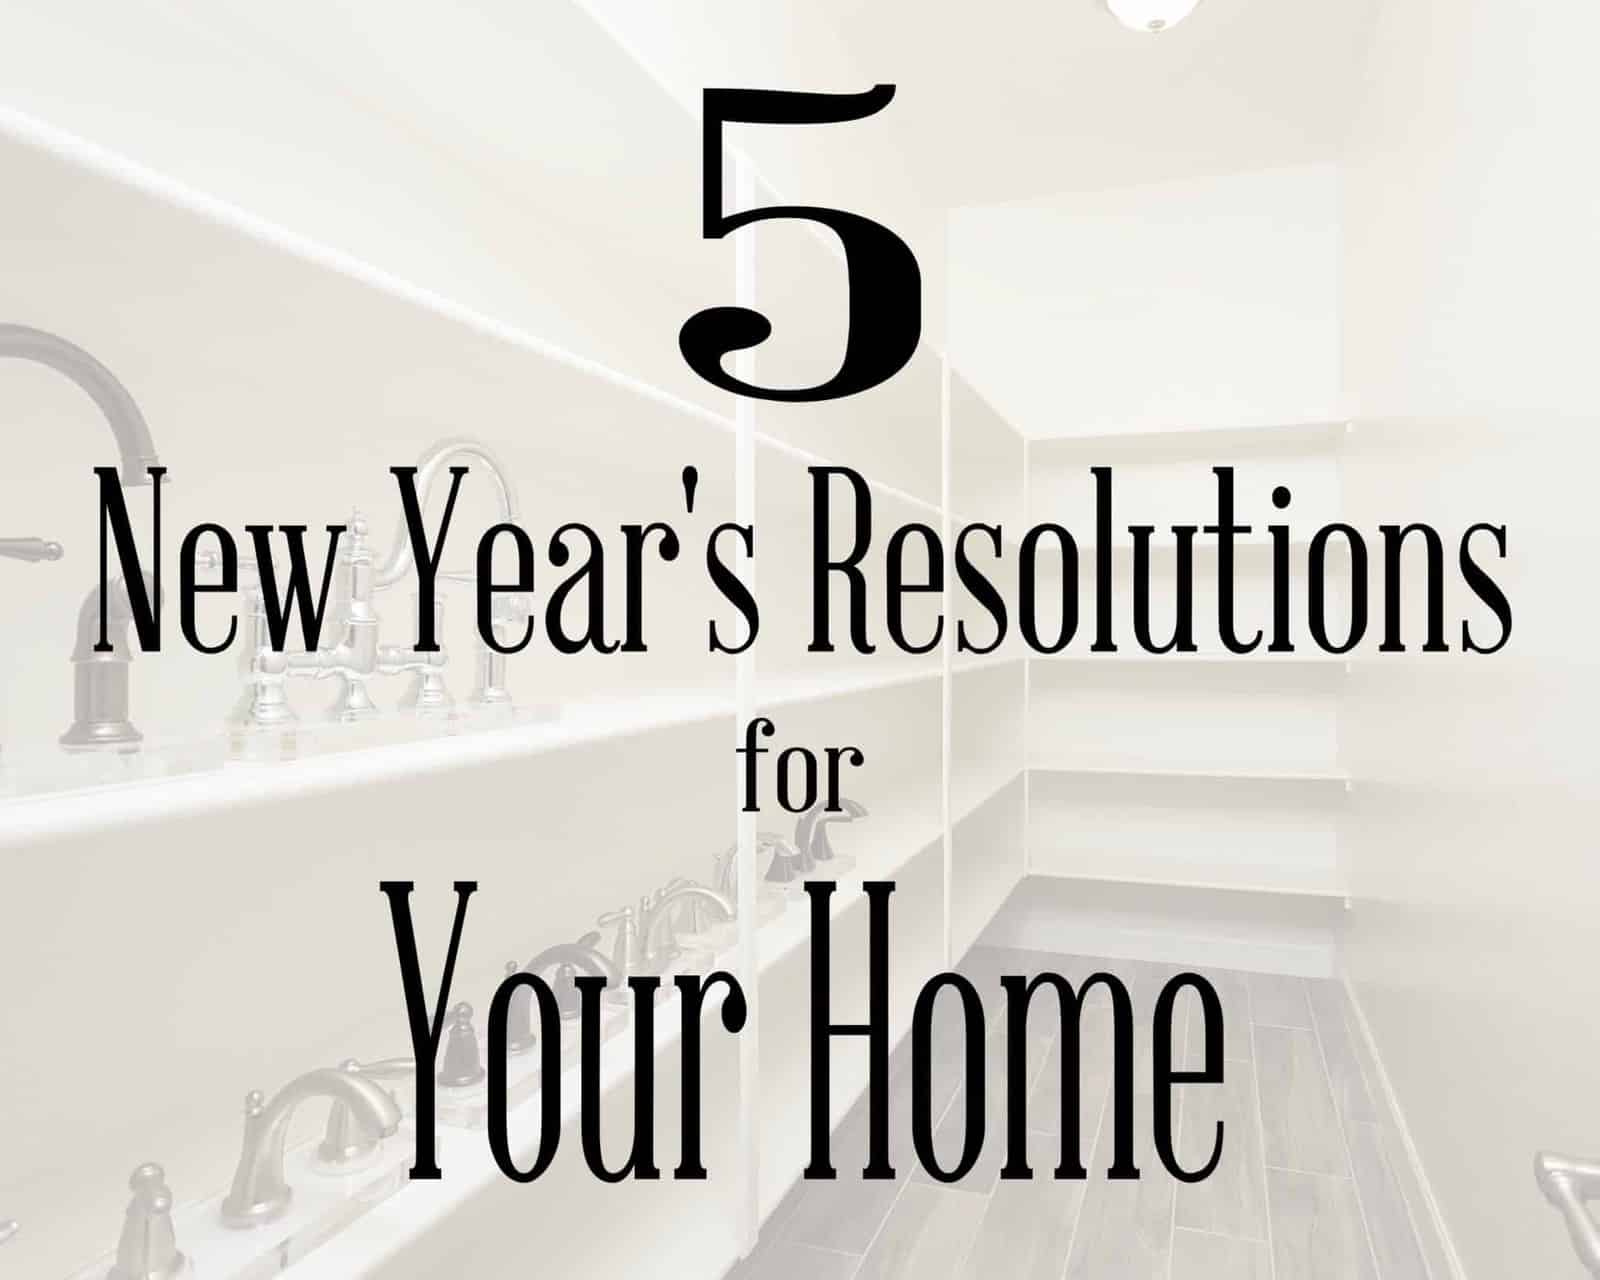 5 new years resolutions for your home december blog image